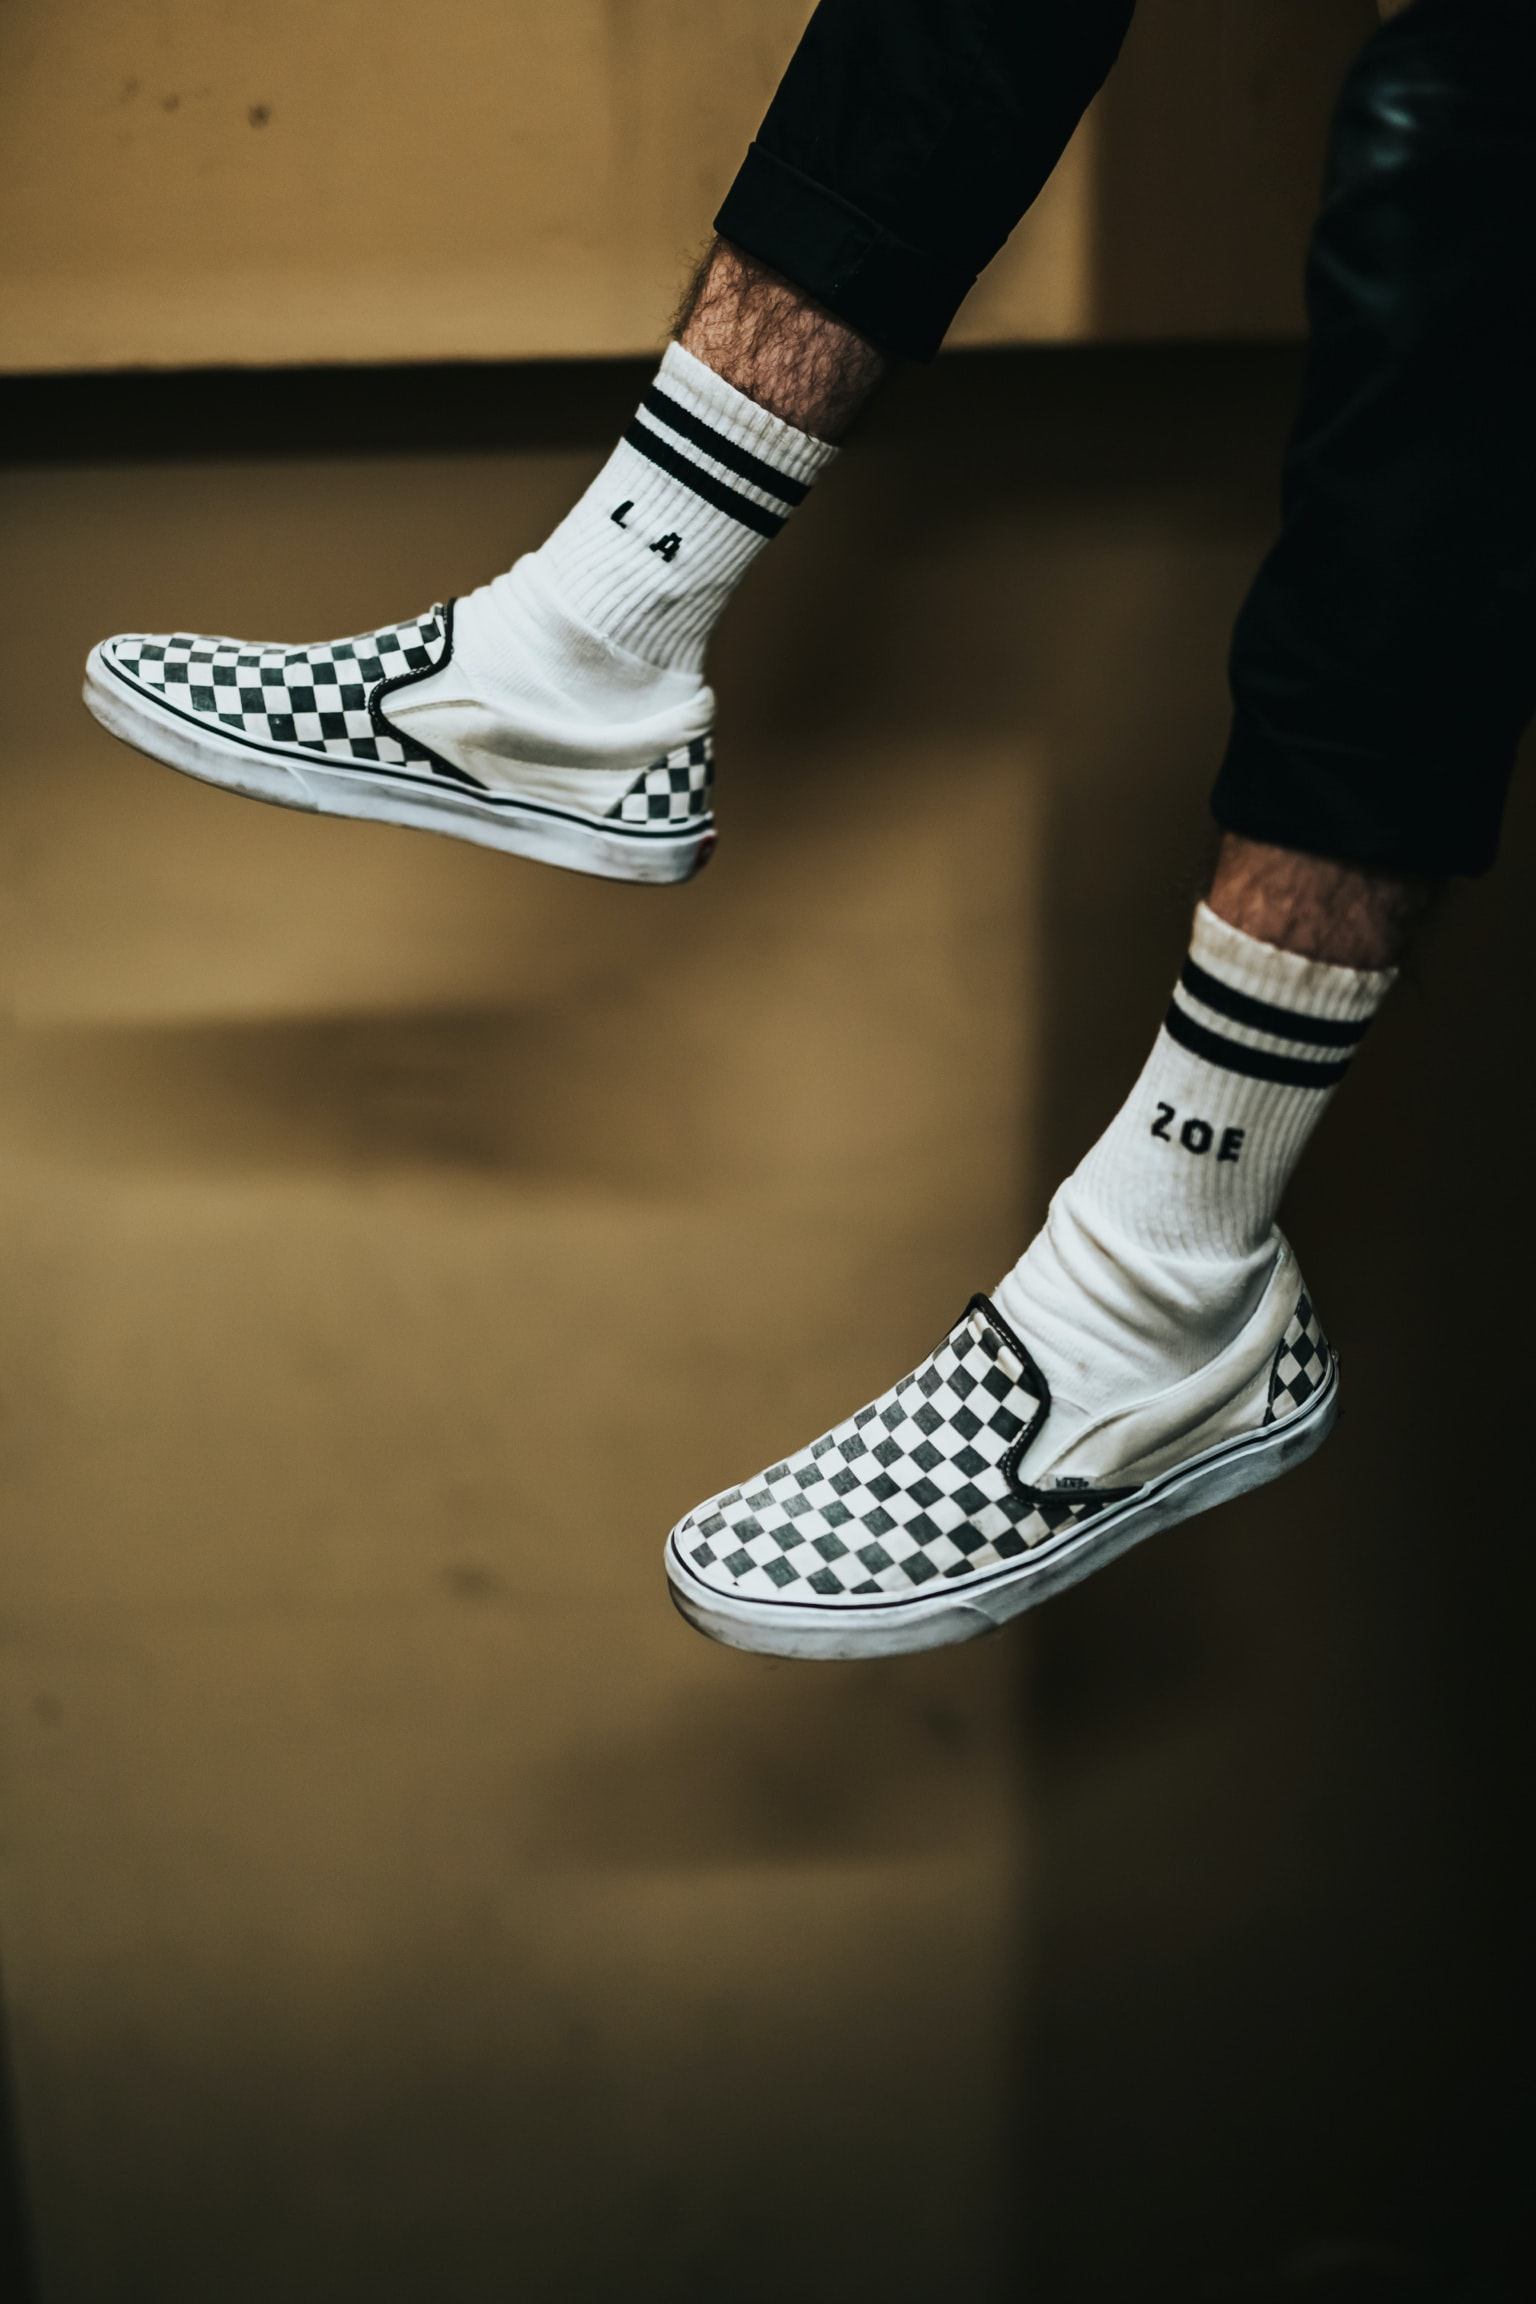 person wearing white-and-black checked slip-on shoes